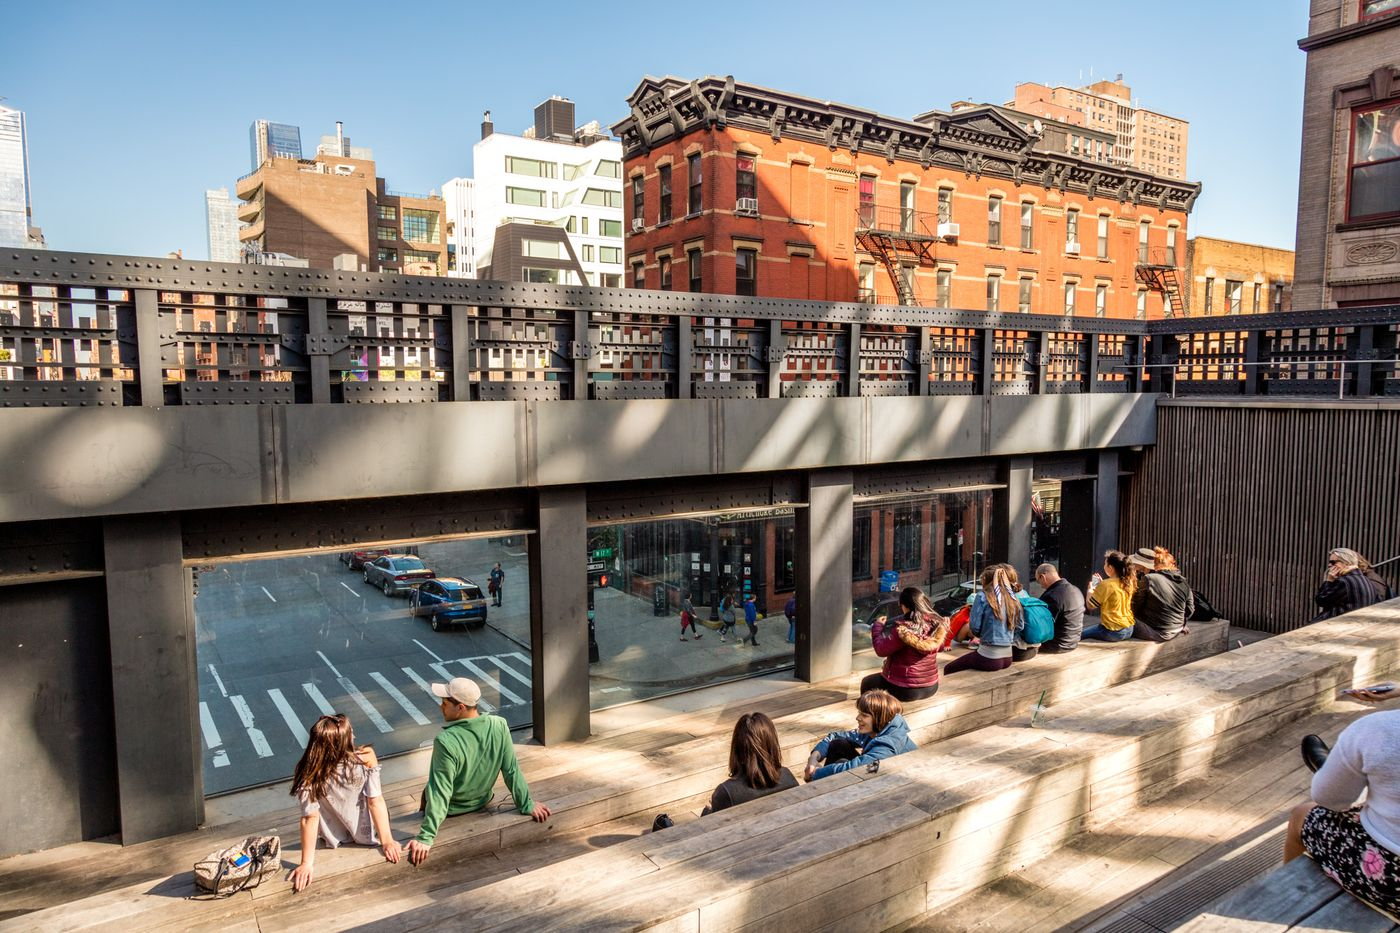 Highline_Guide_Max_Touhey_20190416_0084.jpg